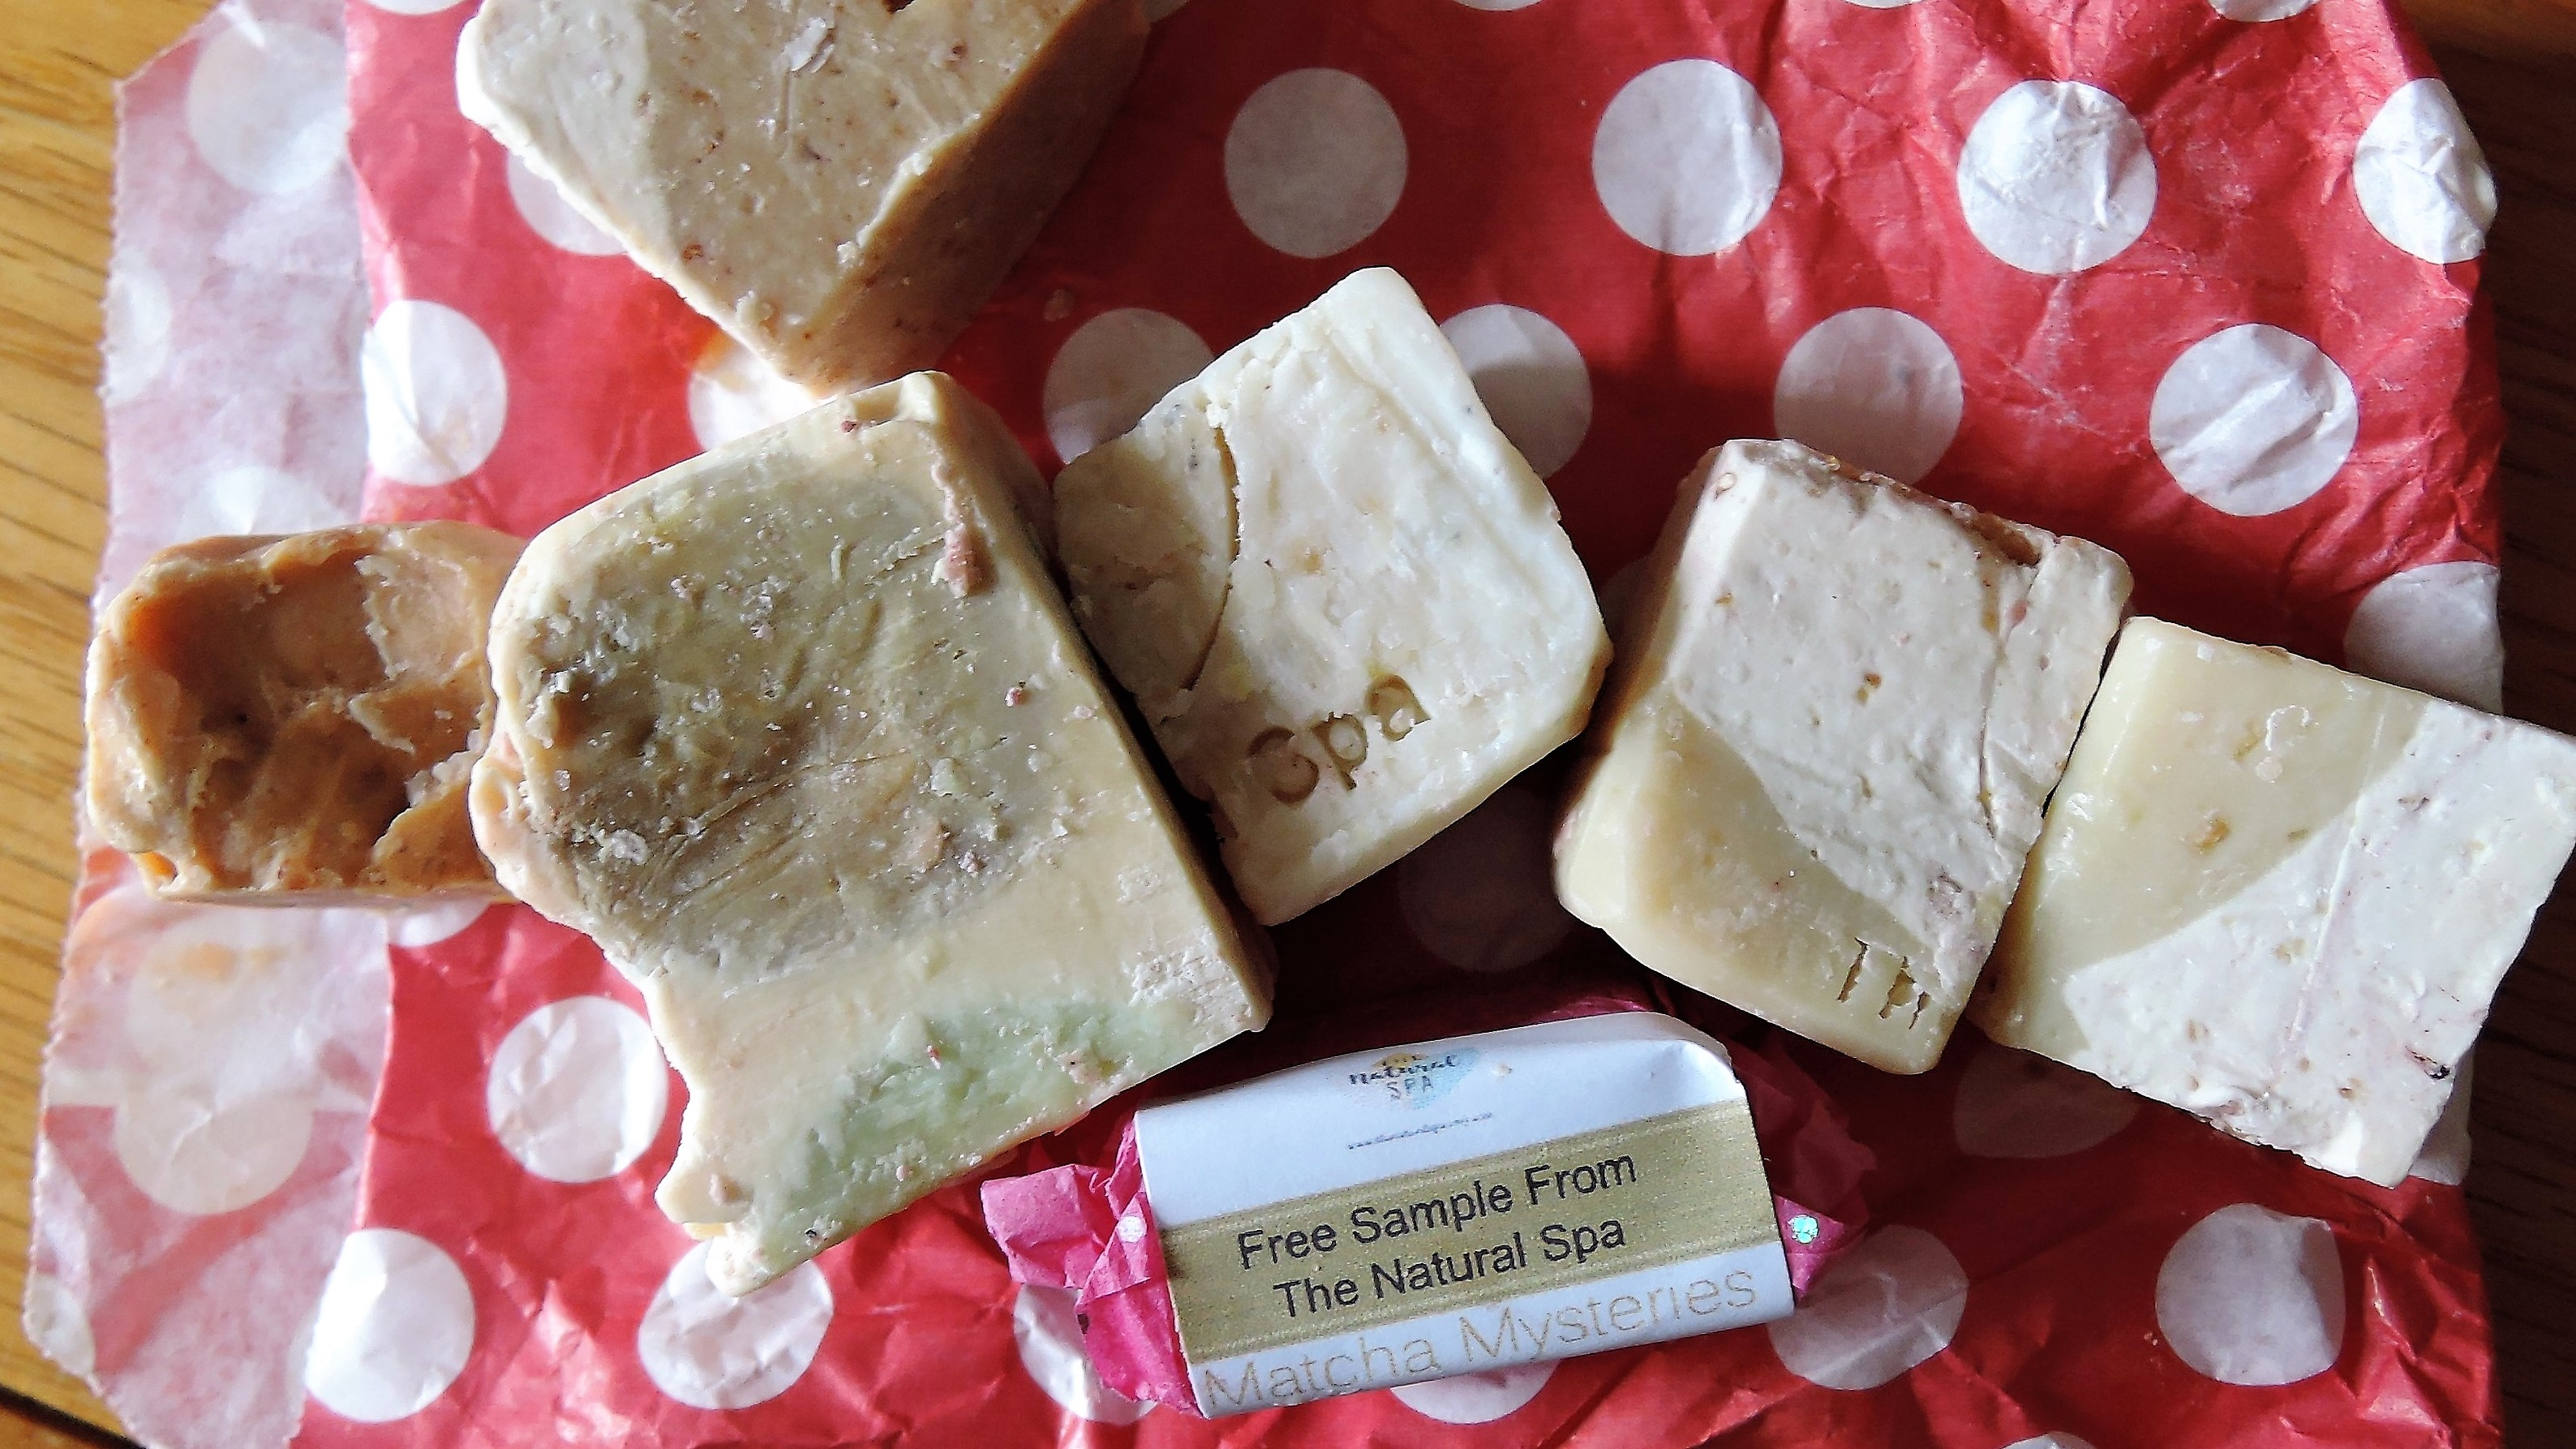 Soap Ends from Etsy Seller The Natural Spa